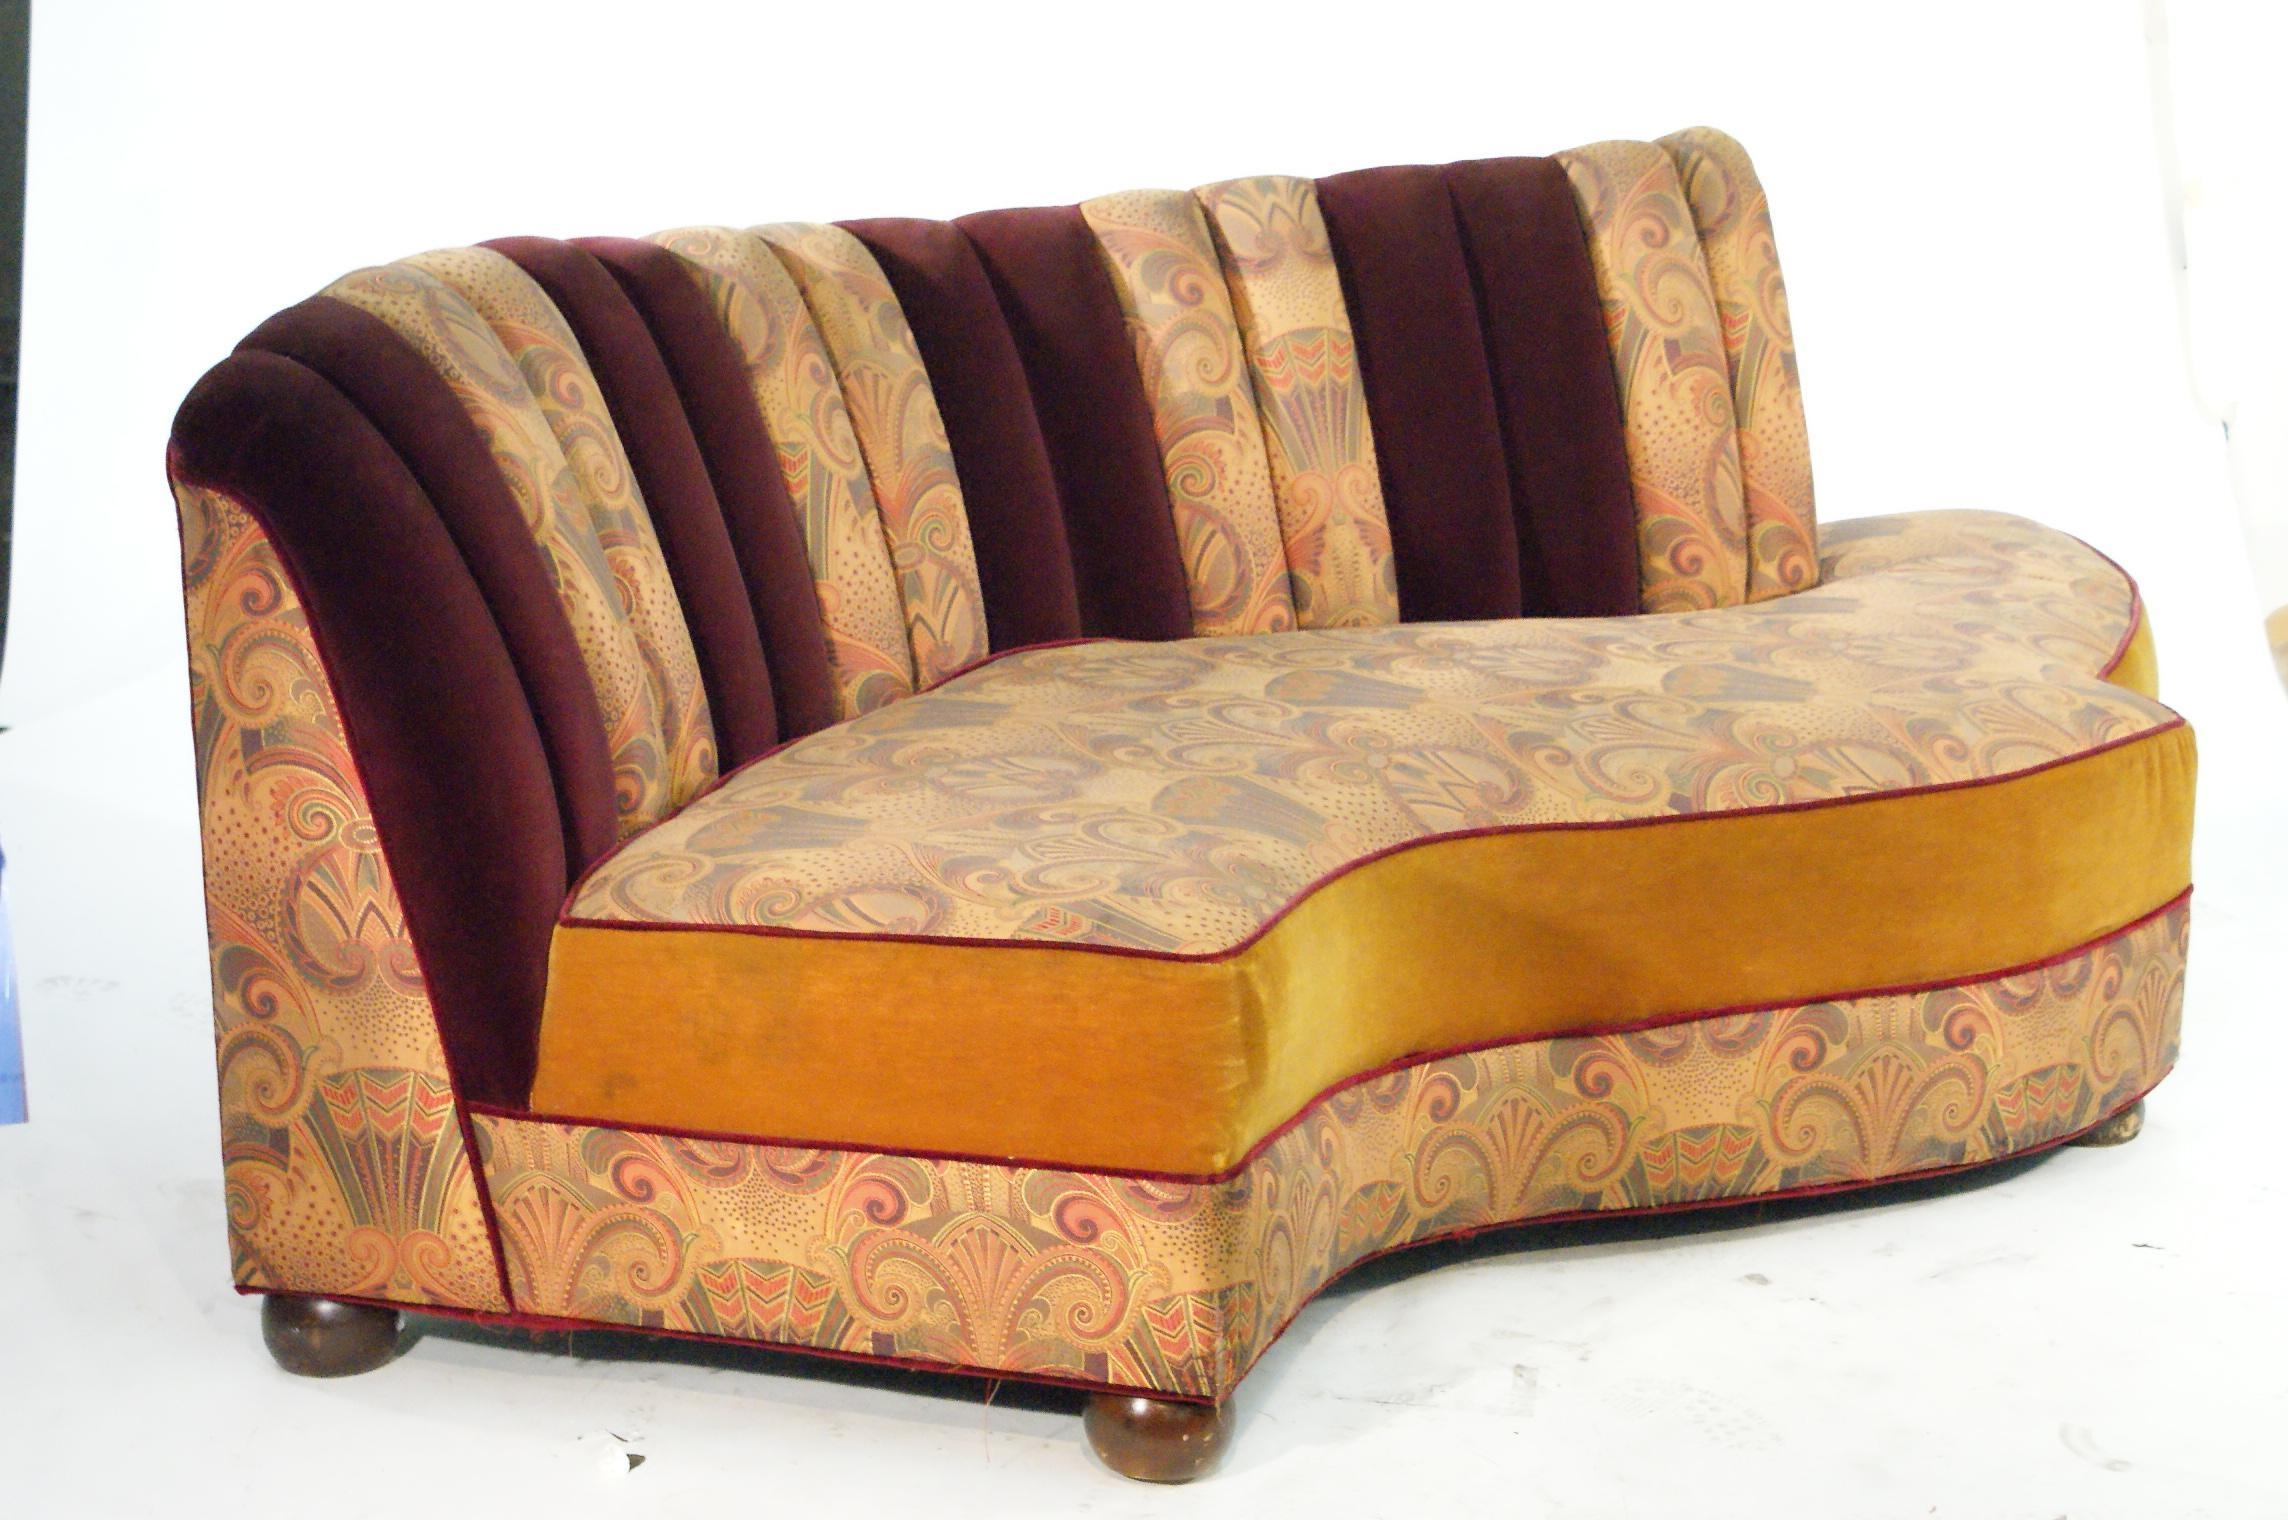 Art Deco Furniture Style With Regard To Art Deco Sofa And Chairs (Image 12 of 20)